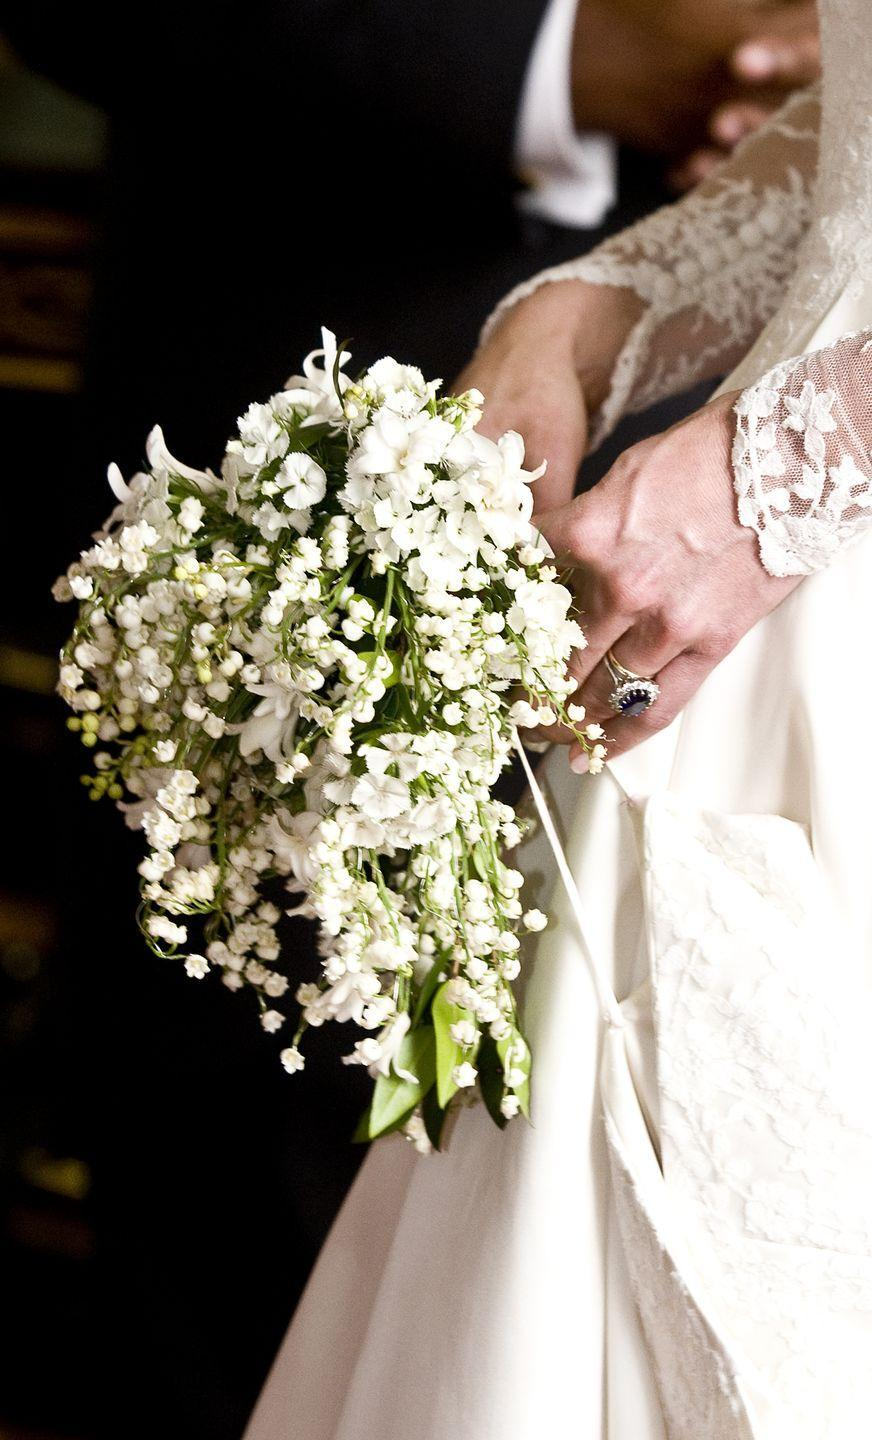 """<p>Kate's <a href=""""https://www.glamour.com/story/royal-wedding-the-meaning-behi"""" rel=""""nofollow noopener"""" target=""""_blank"""" data-ylk=""""slk:bouquet contained local flowers"""" class=""""link rapid-noclick-resp"""">bouquet contained local flowers</a> like lily of the valley, sweet William, myrtle, hyacinth, and ivy. She also embraced the royal tradition, dating all the way back to Queen Victoria, to carry a sprig of myrtle in her wedding bouquet.</p>"""